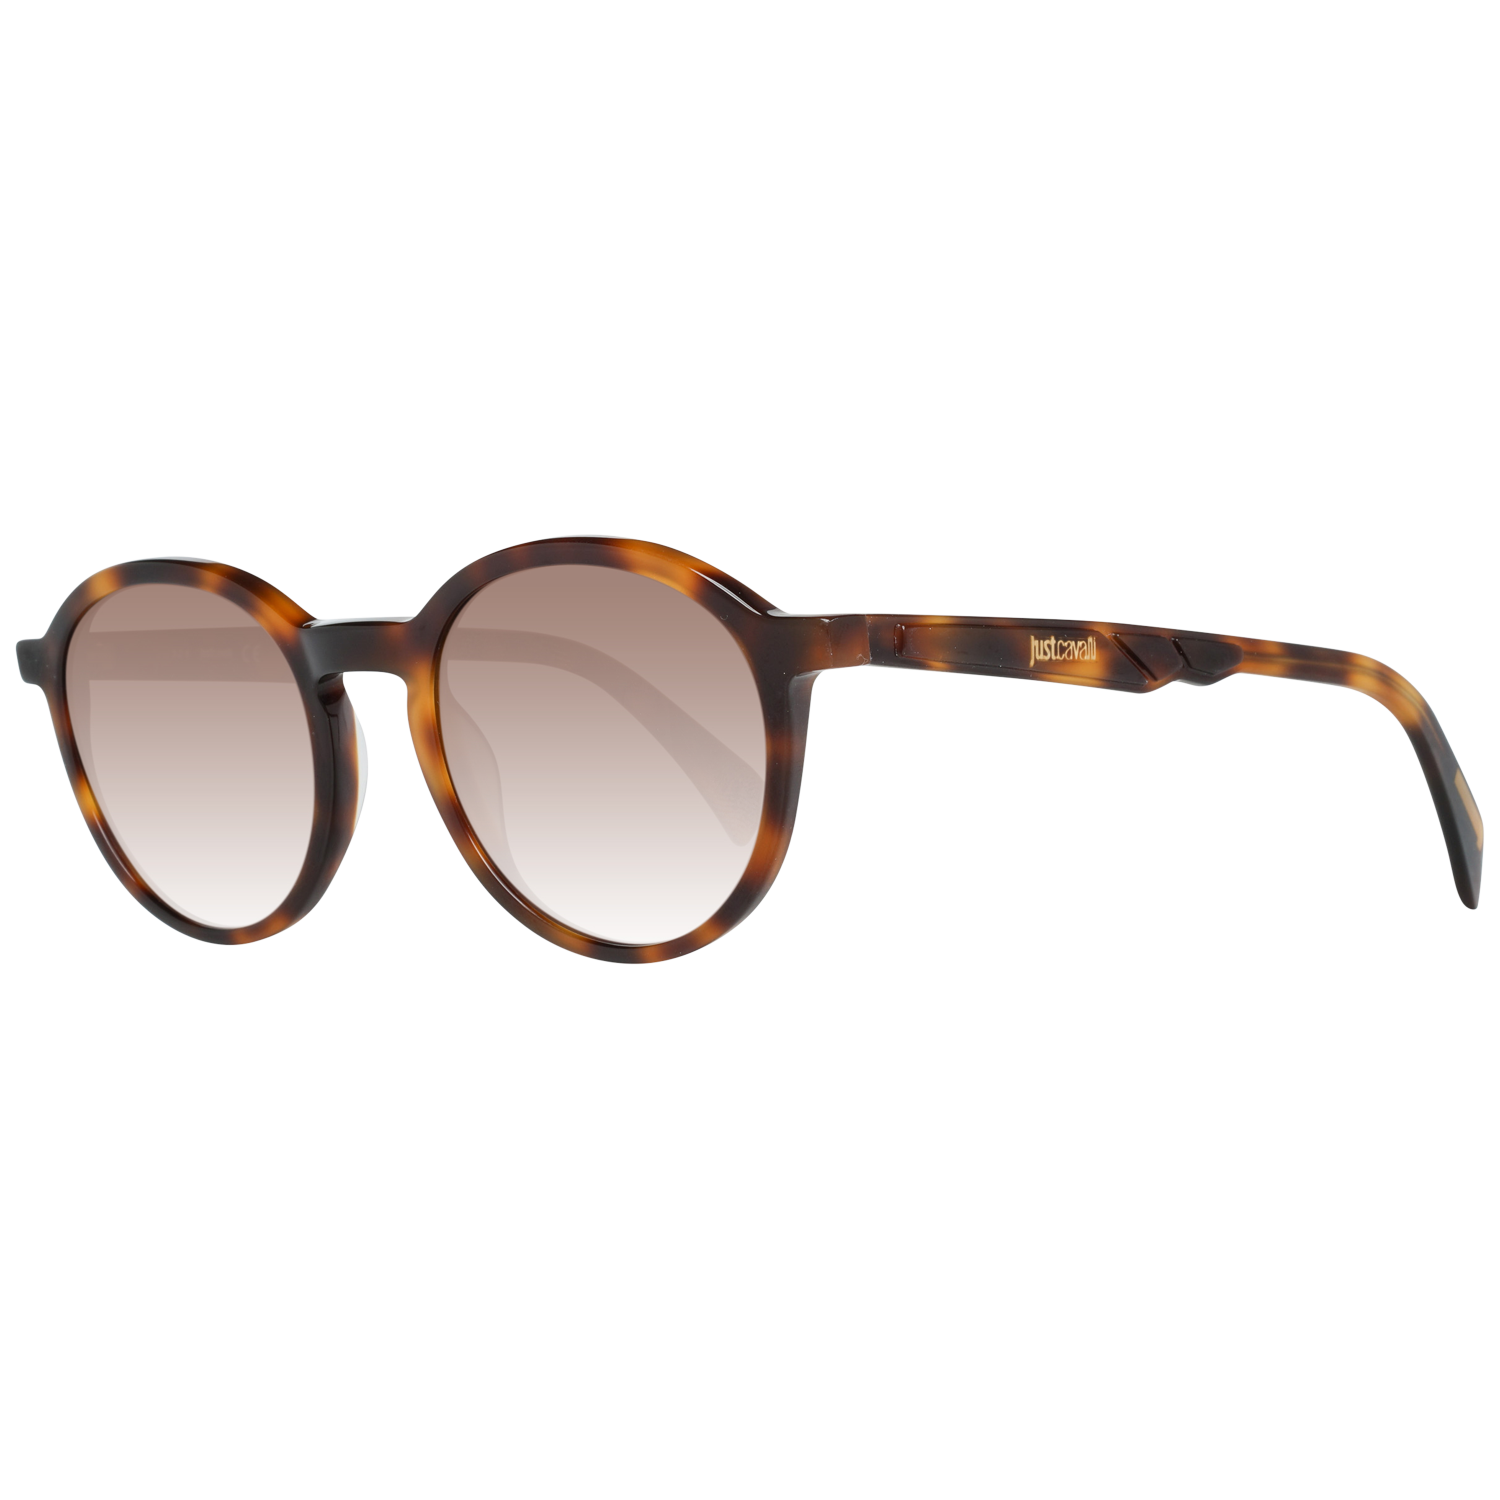 Just Cavalli Sunglasses JC838S 52G 51 Unisex Brown